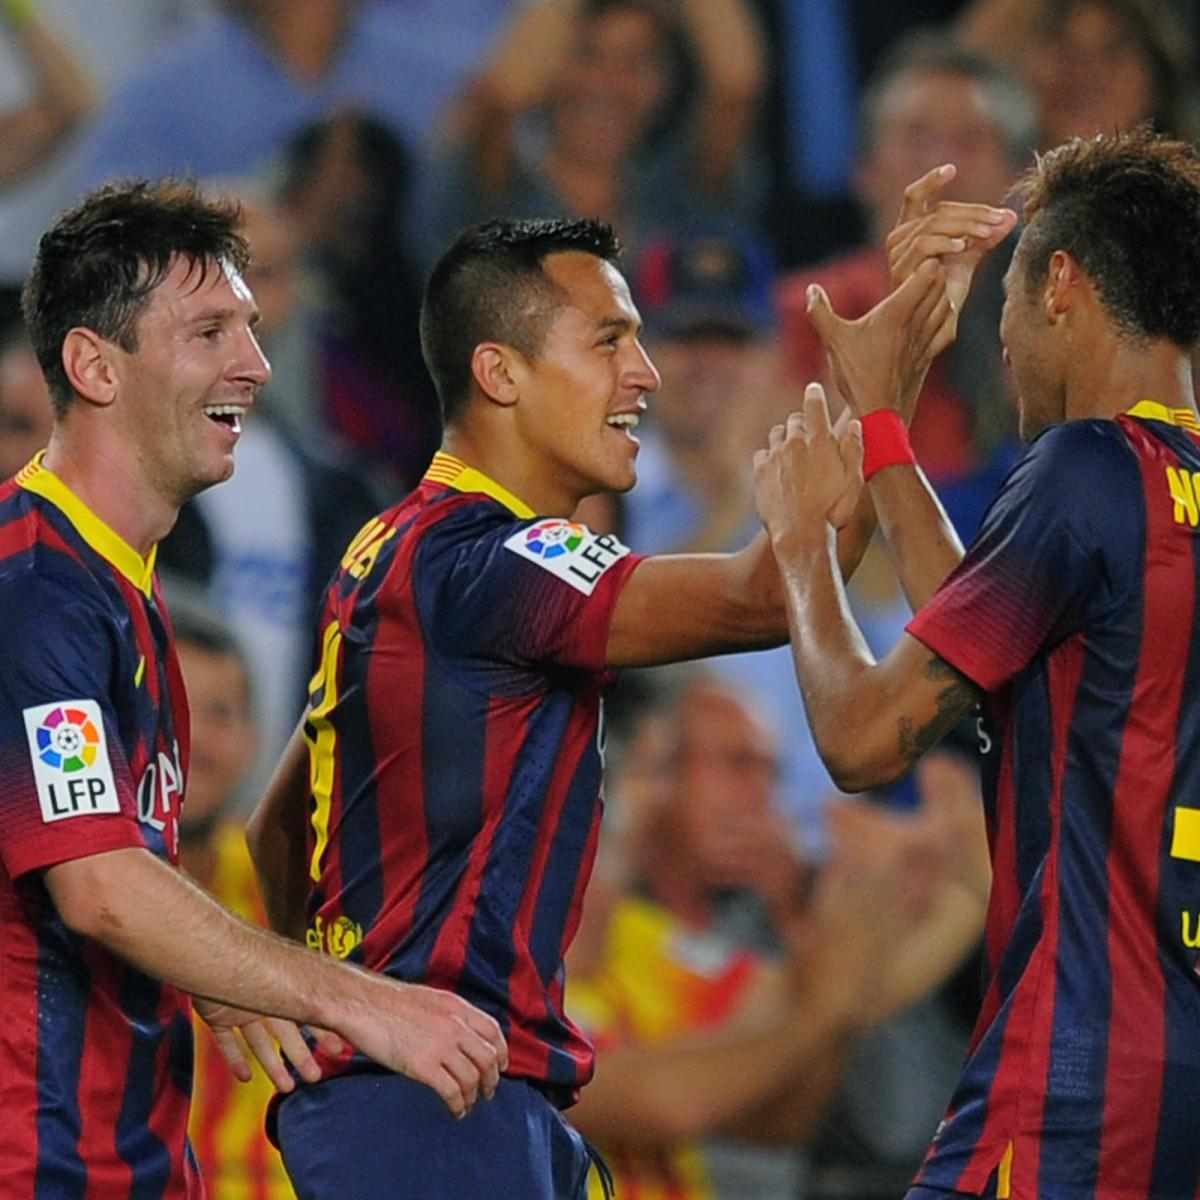 Celta Vigo Vs Barcelona Direct: Celta Vigo Vs. Barcelona: Live Player Ratings For Barca